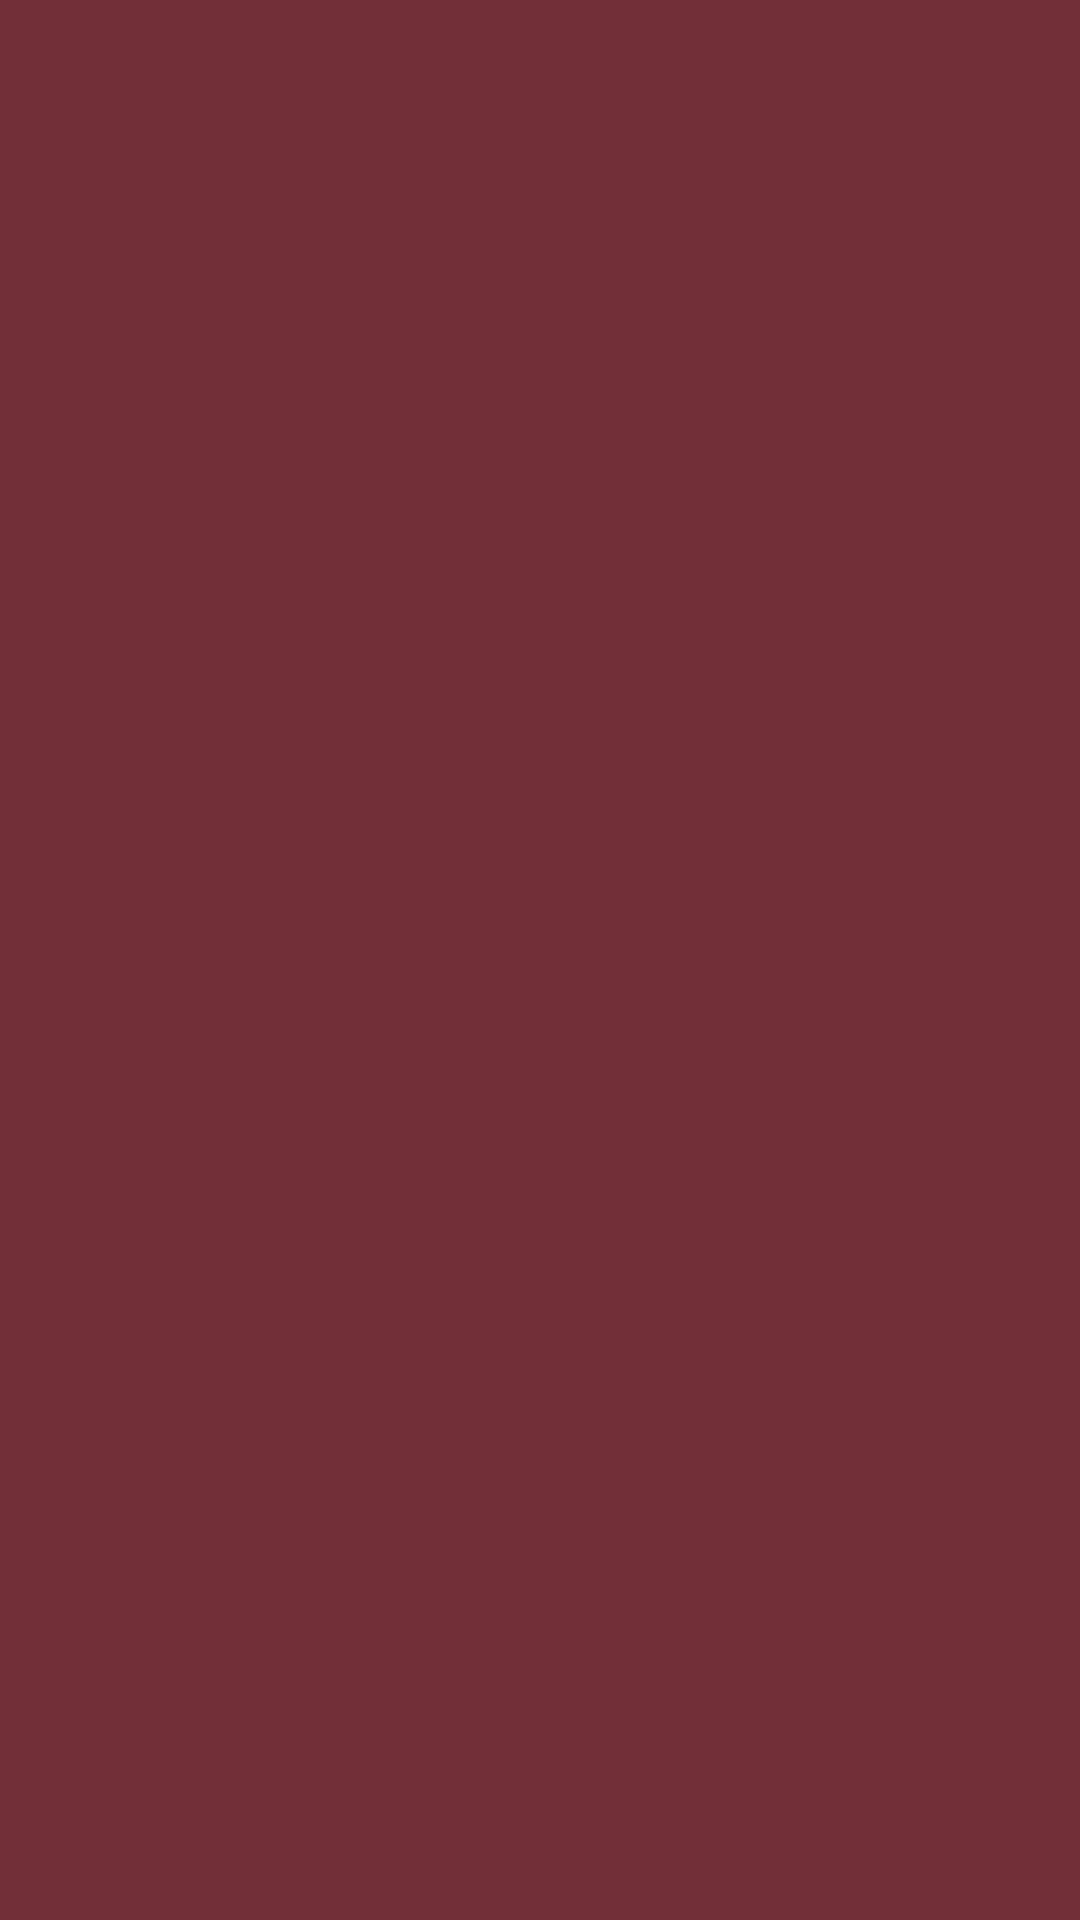 1080x1920 Wine Solid Color Background